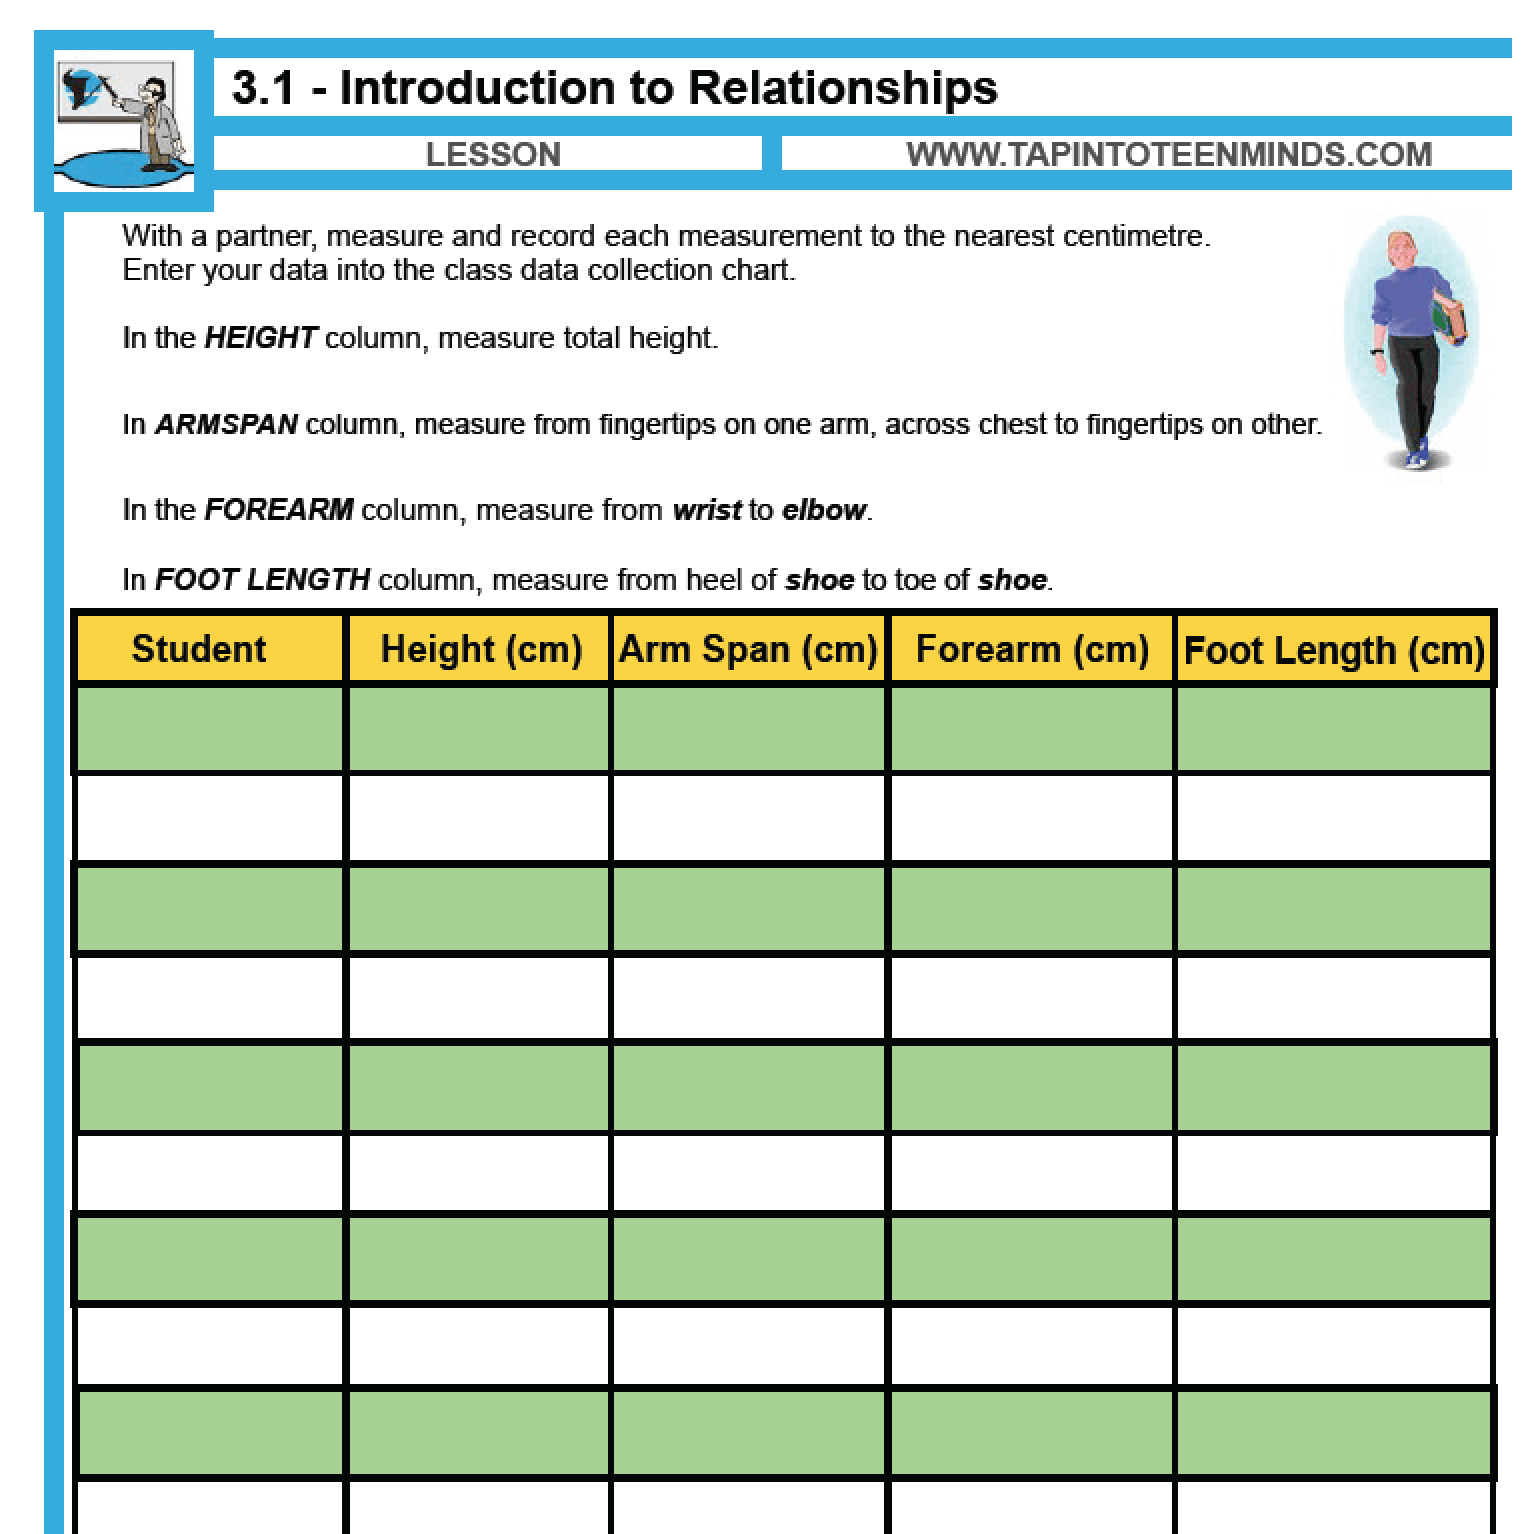 3.1 – Introduction to Relationships